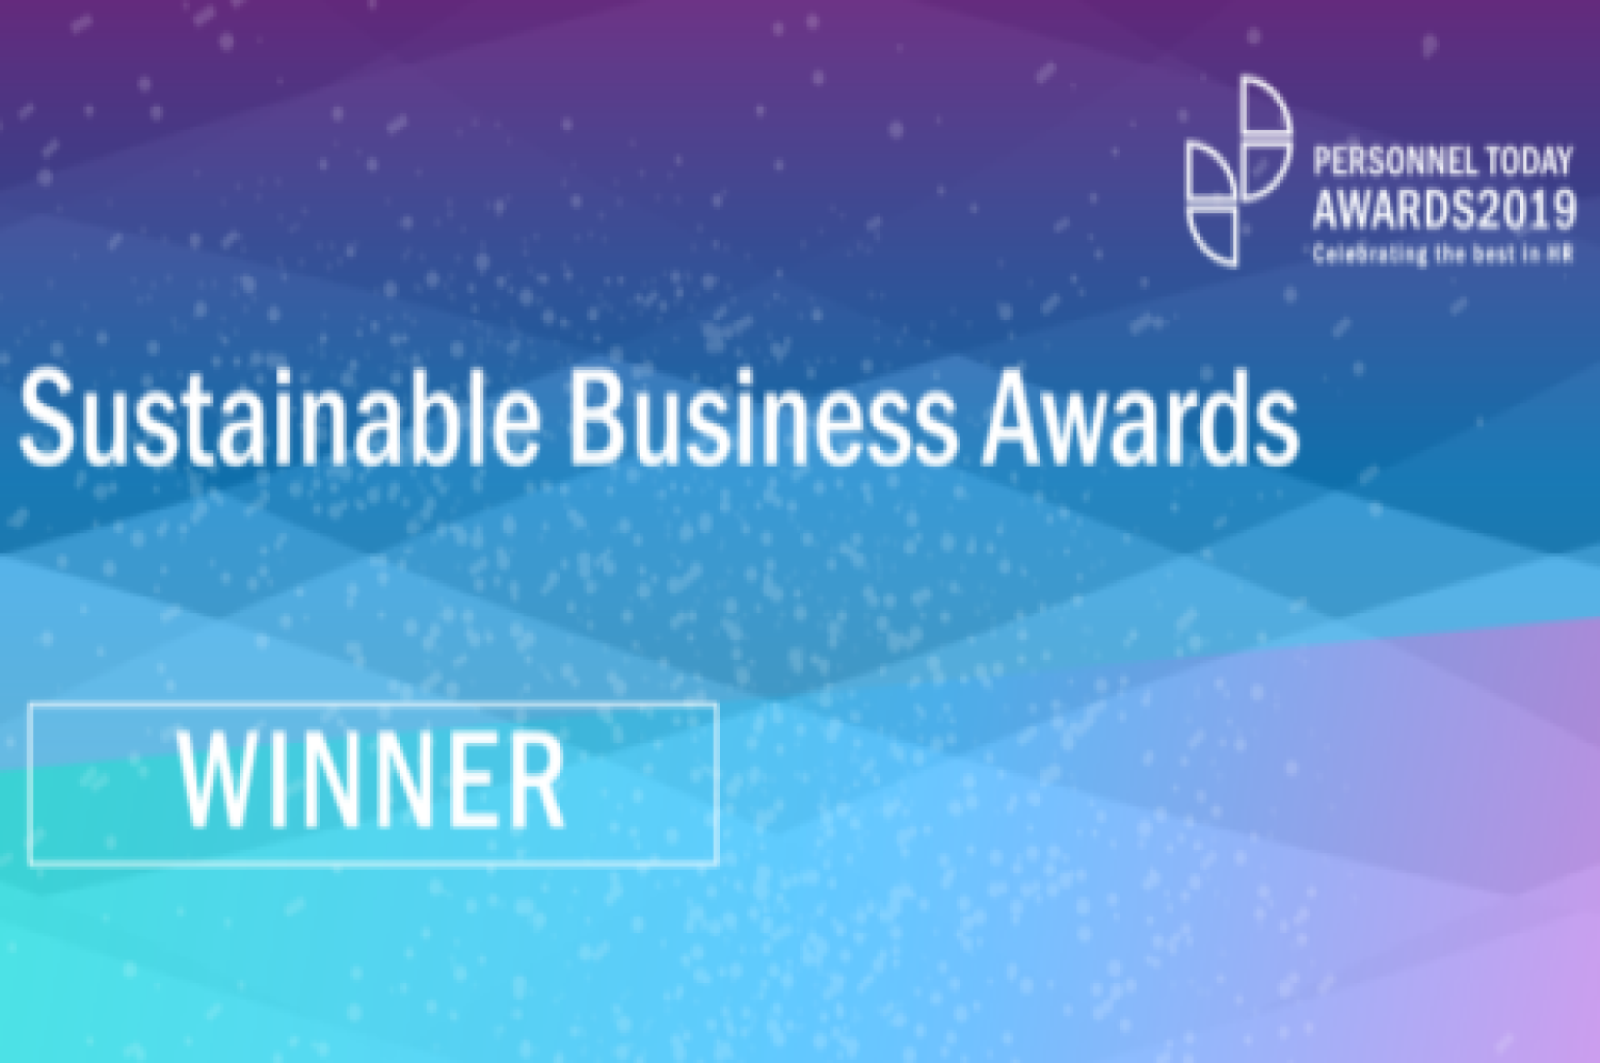 1b937a54-node_Sustainable-Business-Awards (1)